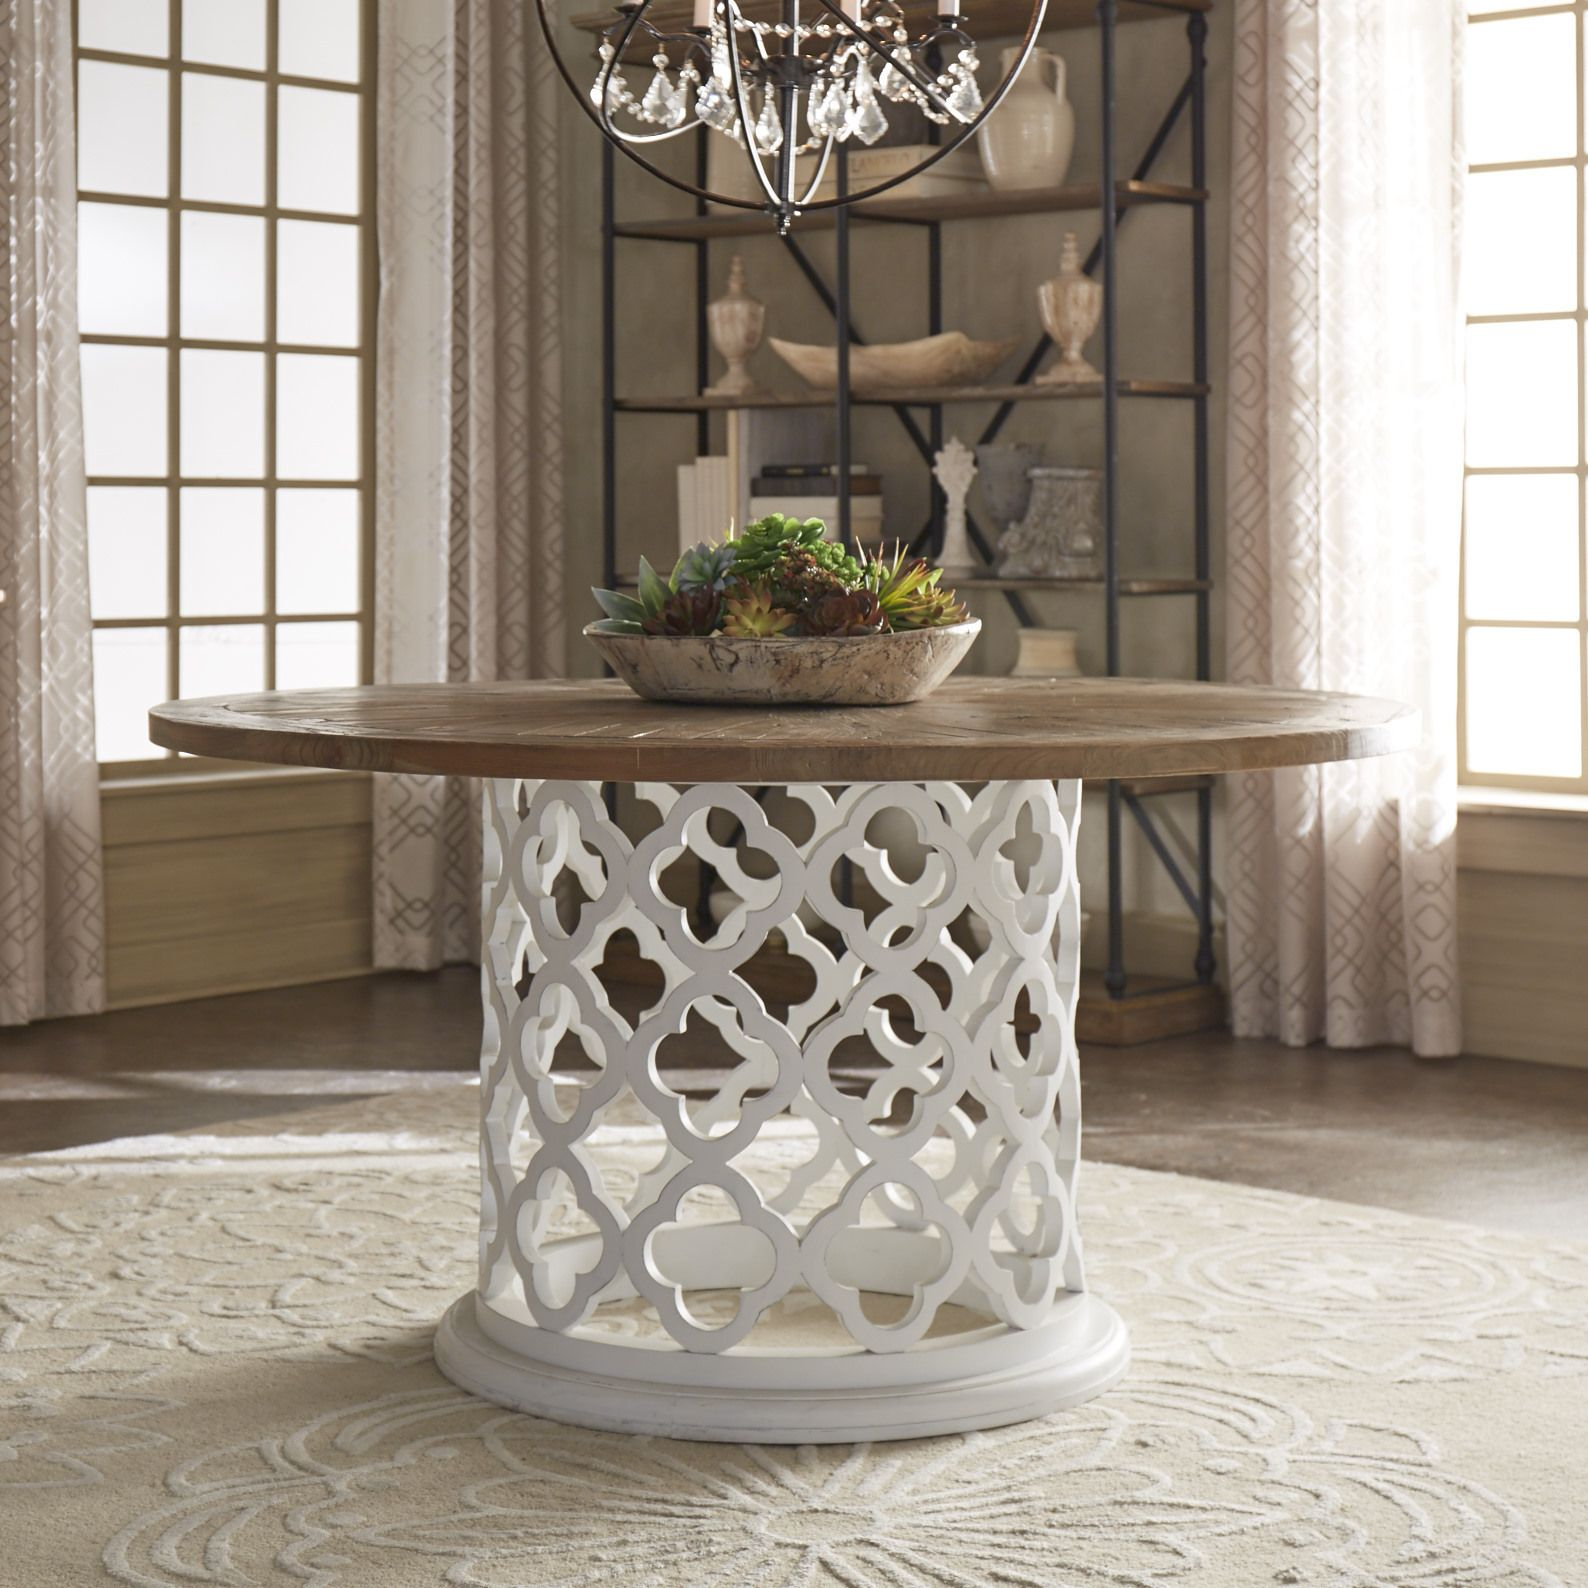 Vince Reclaimed Wood 60 Inch Moroccan Trellis Drum Dining Table By Inspire Q Artisan With Images Dining Table Round Wood Coffee Table Table